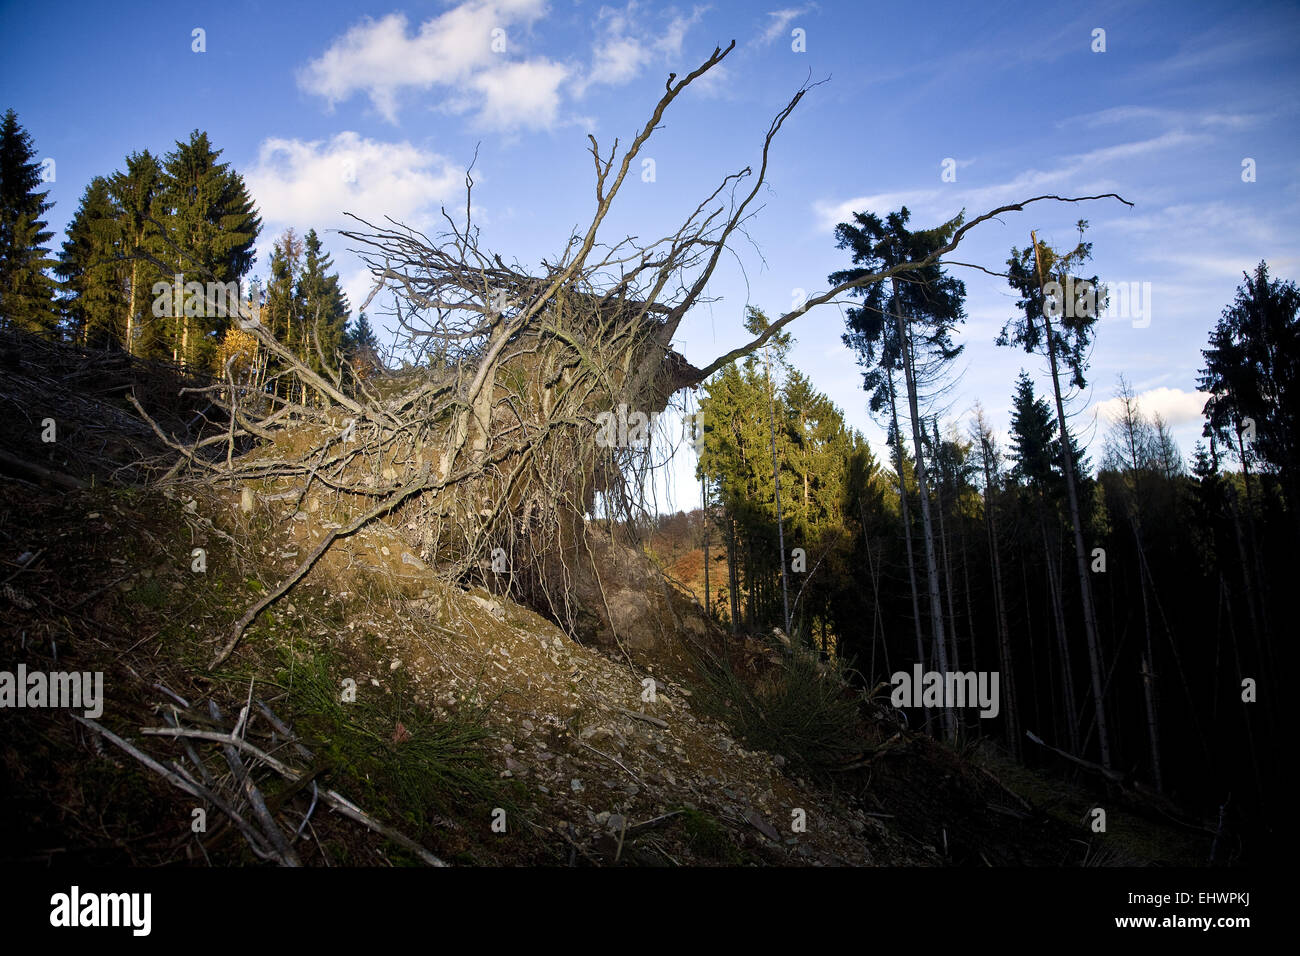 Uprooted tree, Breckerfeld, Germany. - Stock Image